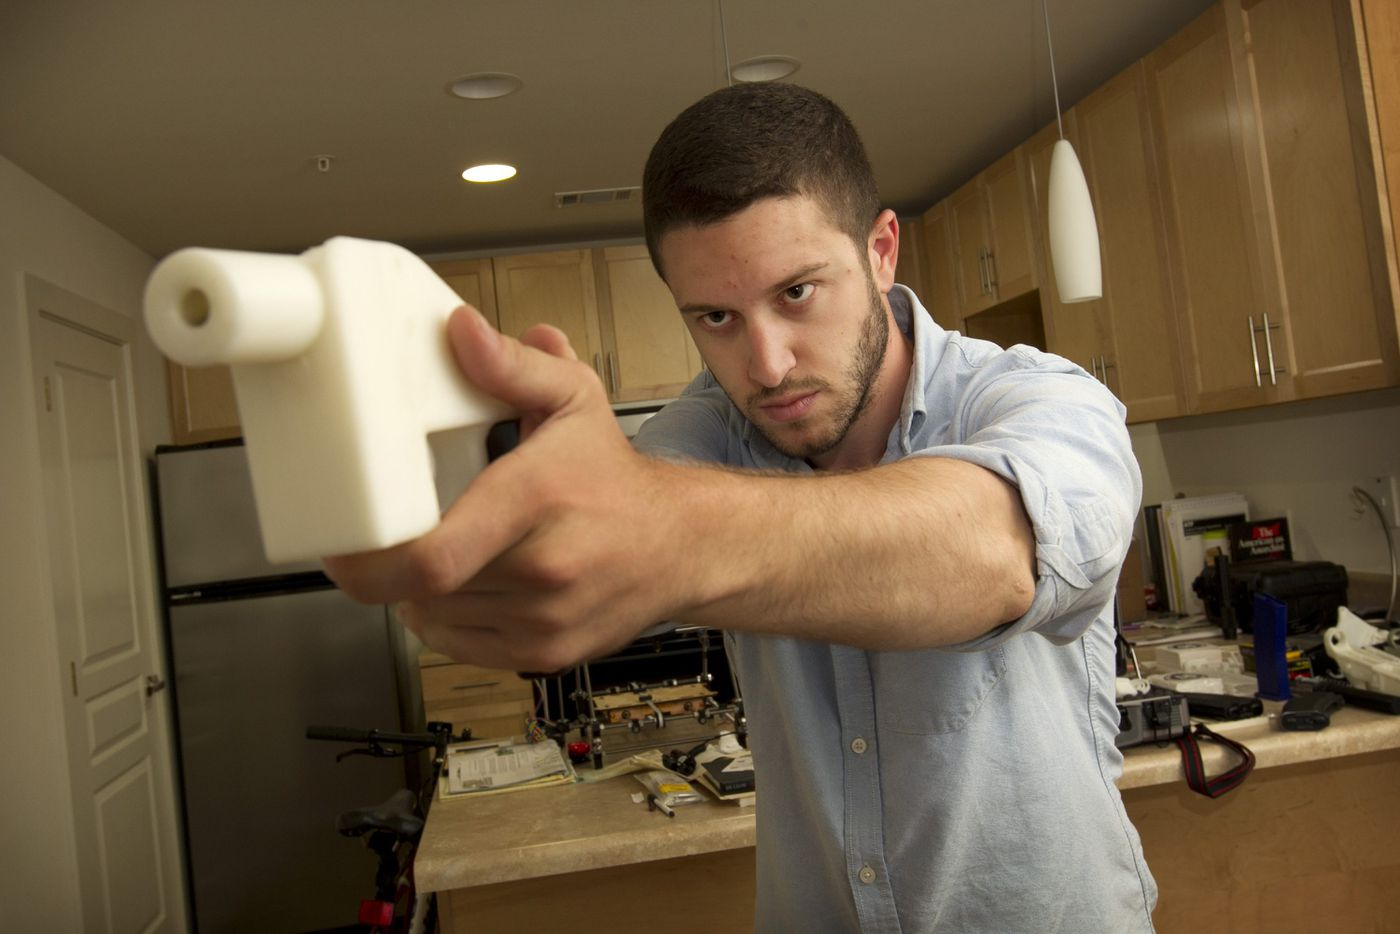 3D printed guns: How did we get here and what can we do? | Opinion